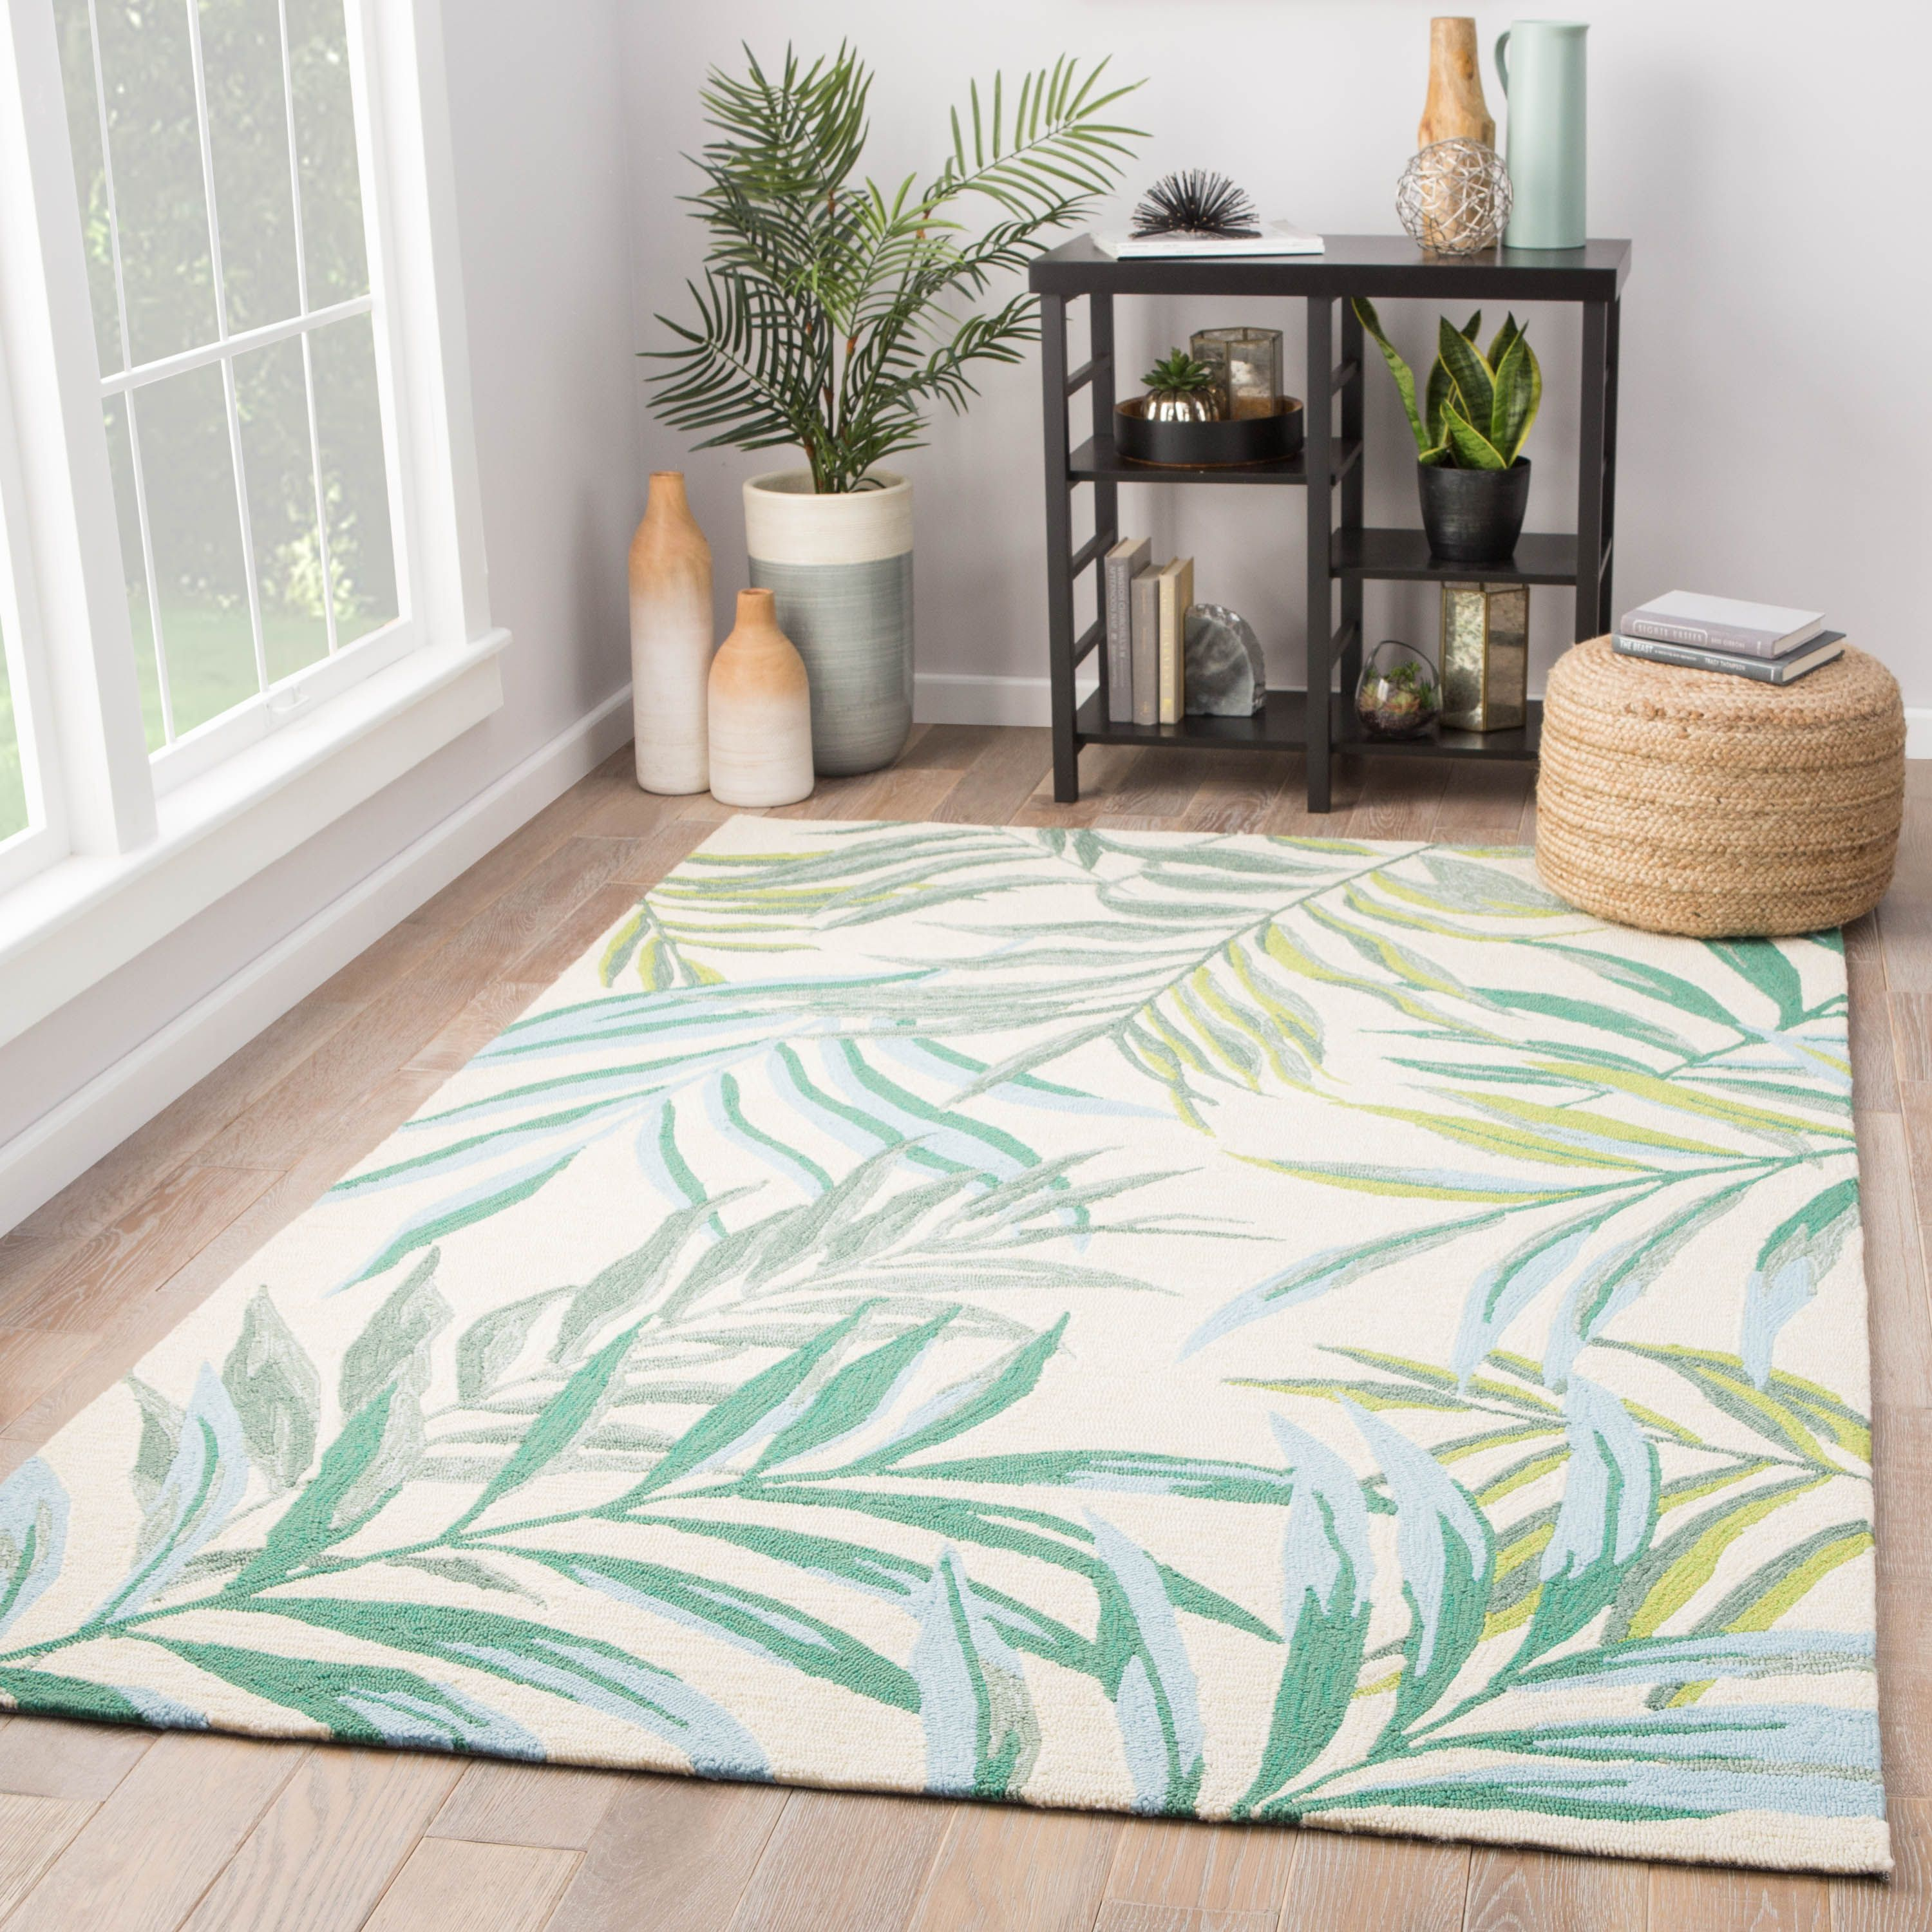 The Catalina Palm Fronds Indoor Outdoor Area Rug Is Designed Showcasing Tropical Blue And Green Botanical Outdoor Area Rugs Indoor Outdoor Area Rugs Area Rugs